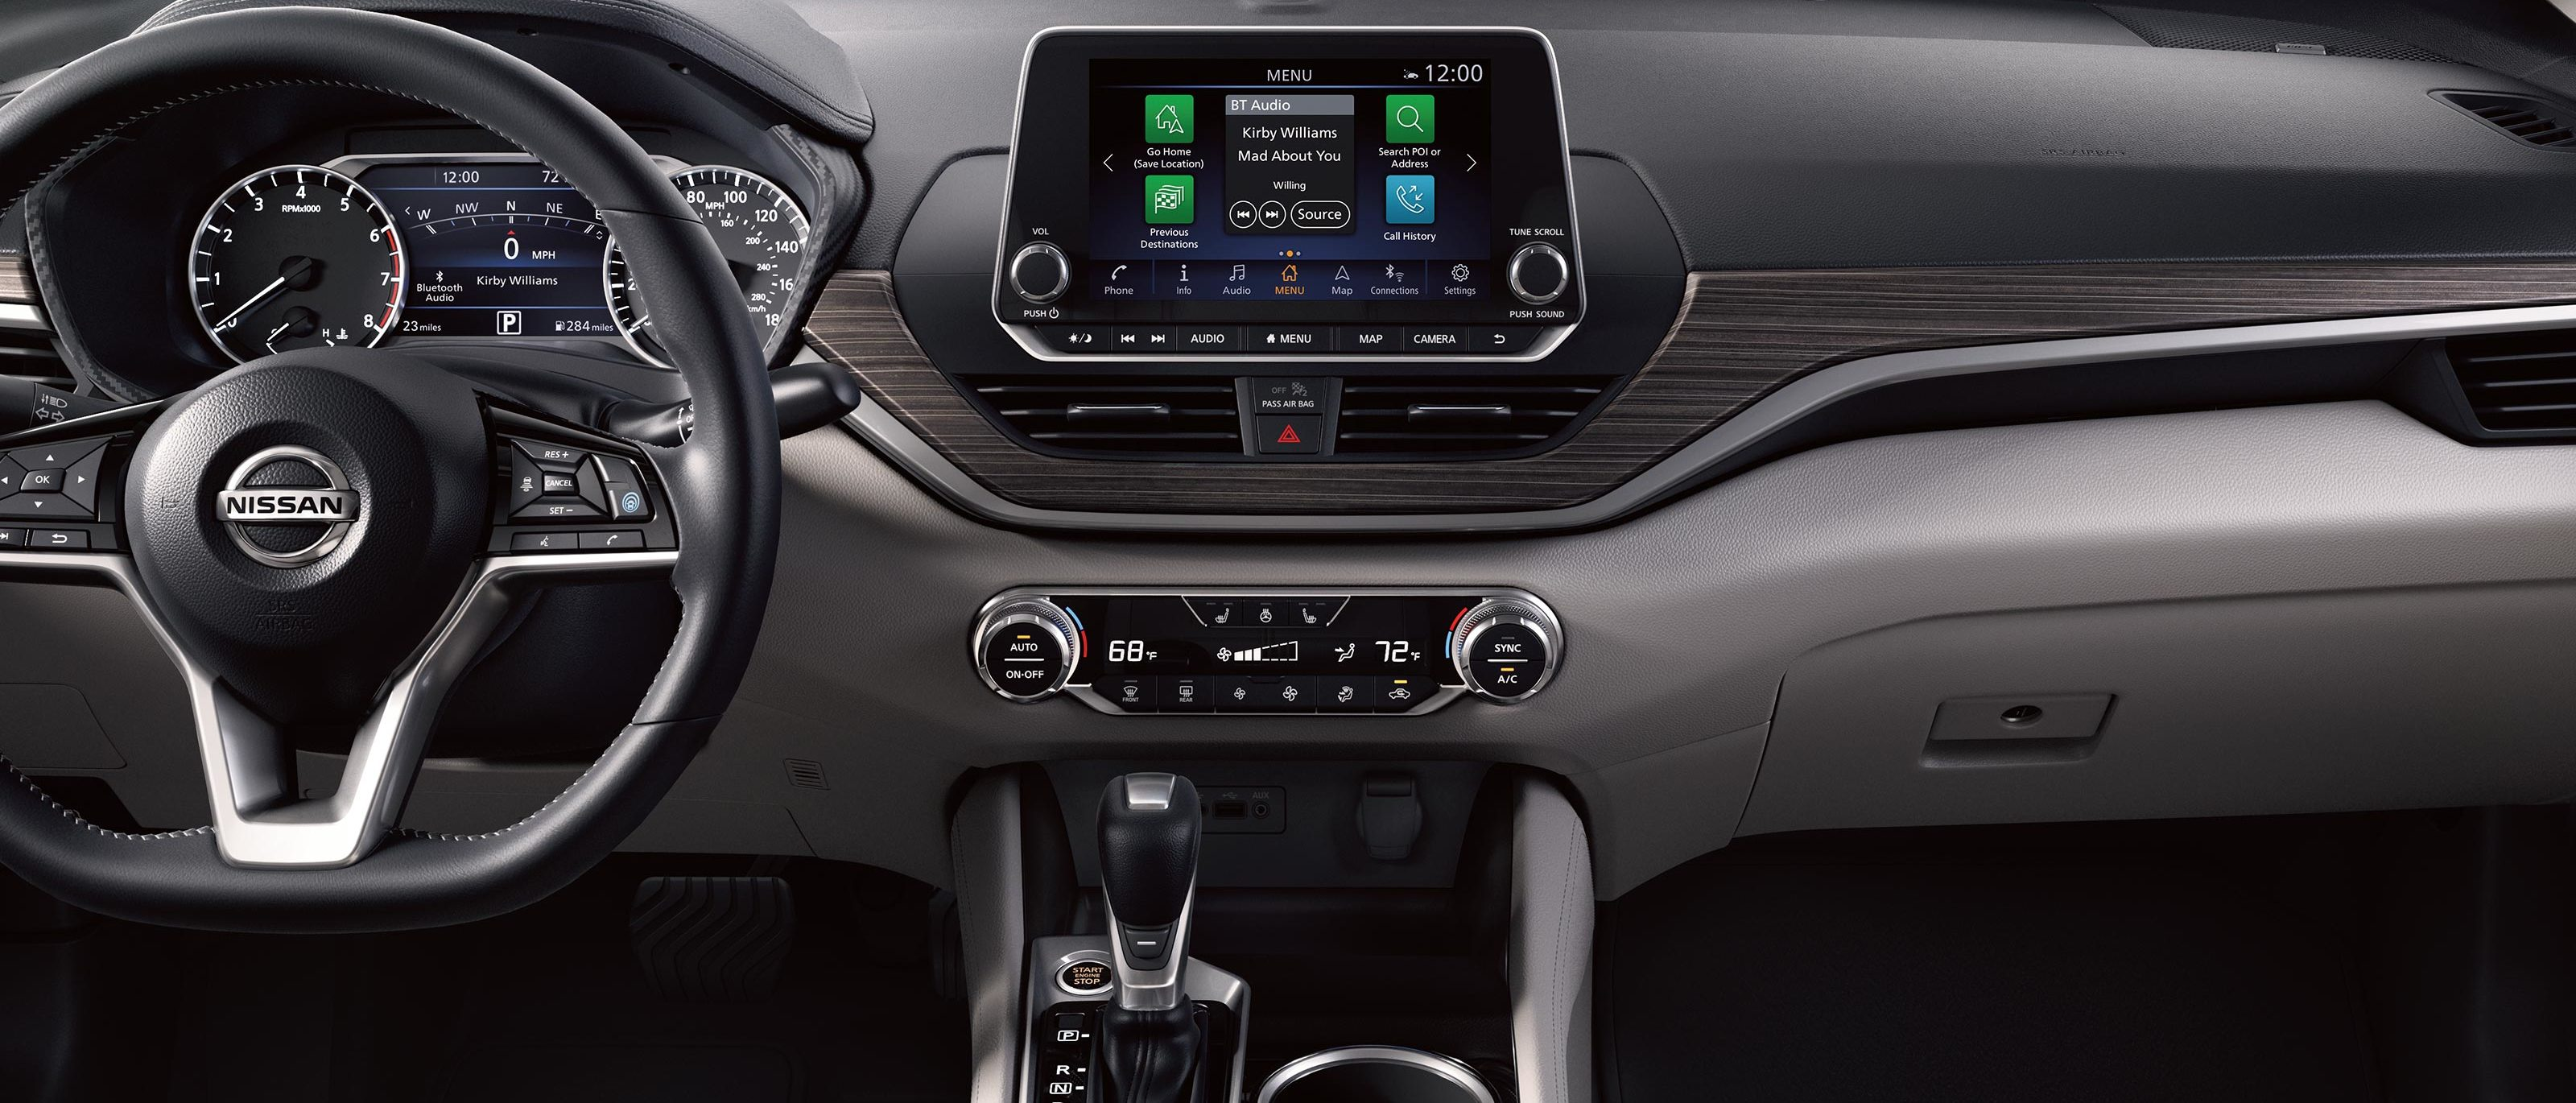 Tech-Loaded Cabin of the 2020 Nissan Altima